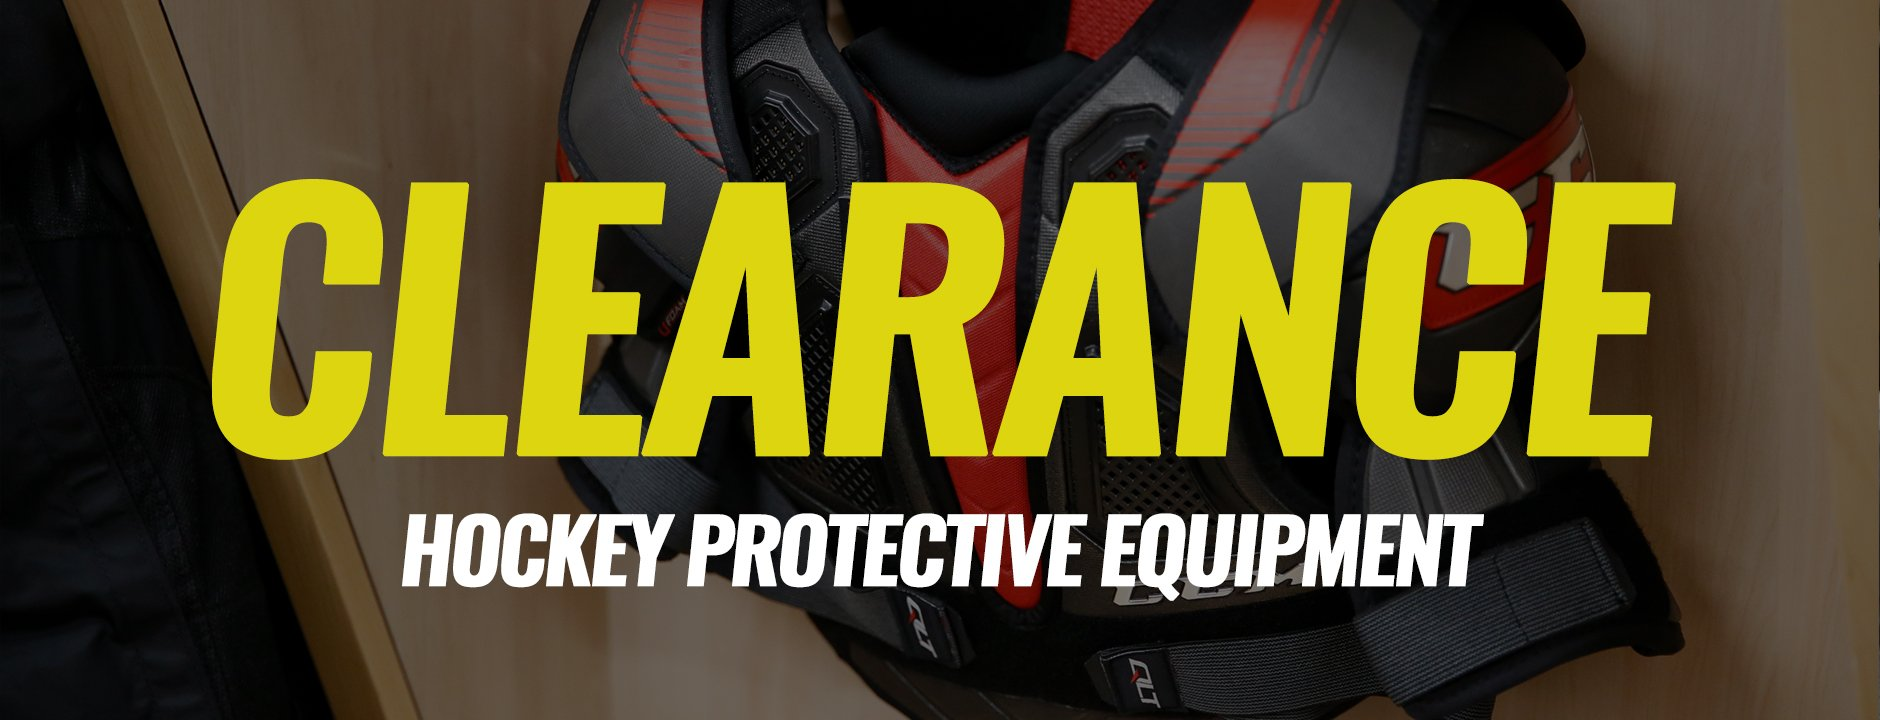 Clearance Protective Hockey Equipment